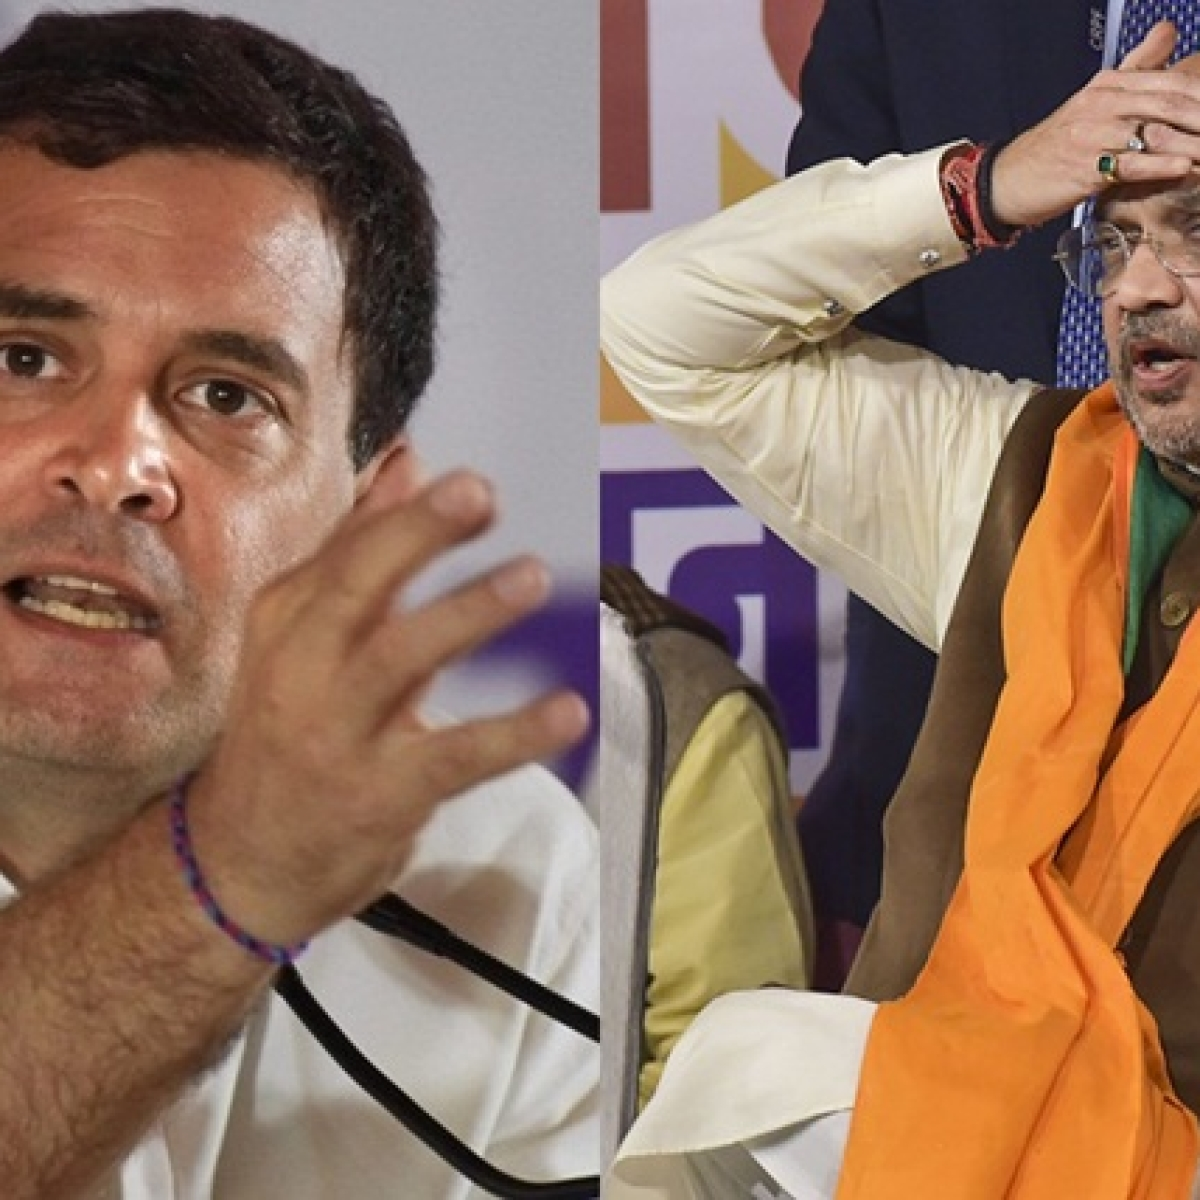 Amit Shah pulls a Rahul Gandhi, says 'million ton' instead of 'trillion'